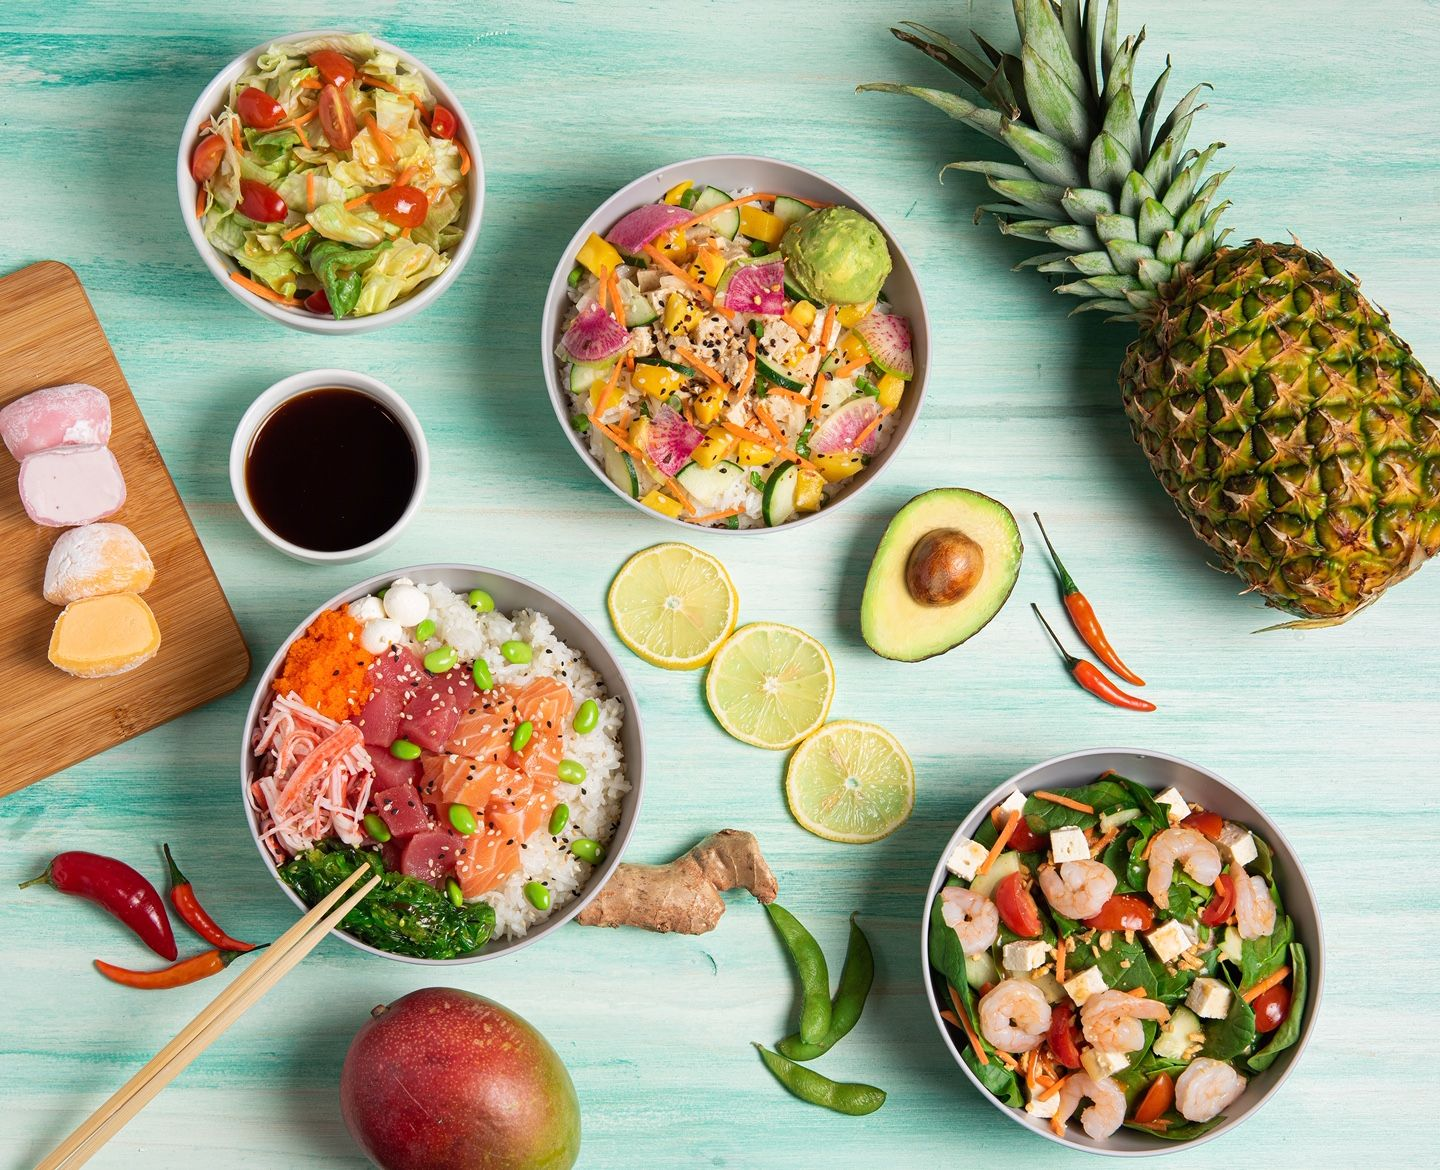 Kona Poké Announces Industry Leading 100% No-Contact Food Prep Guarantee